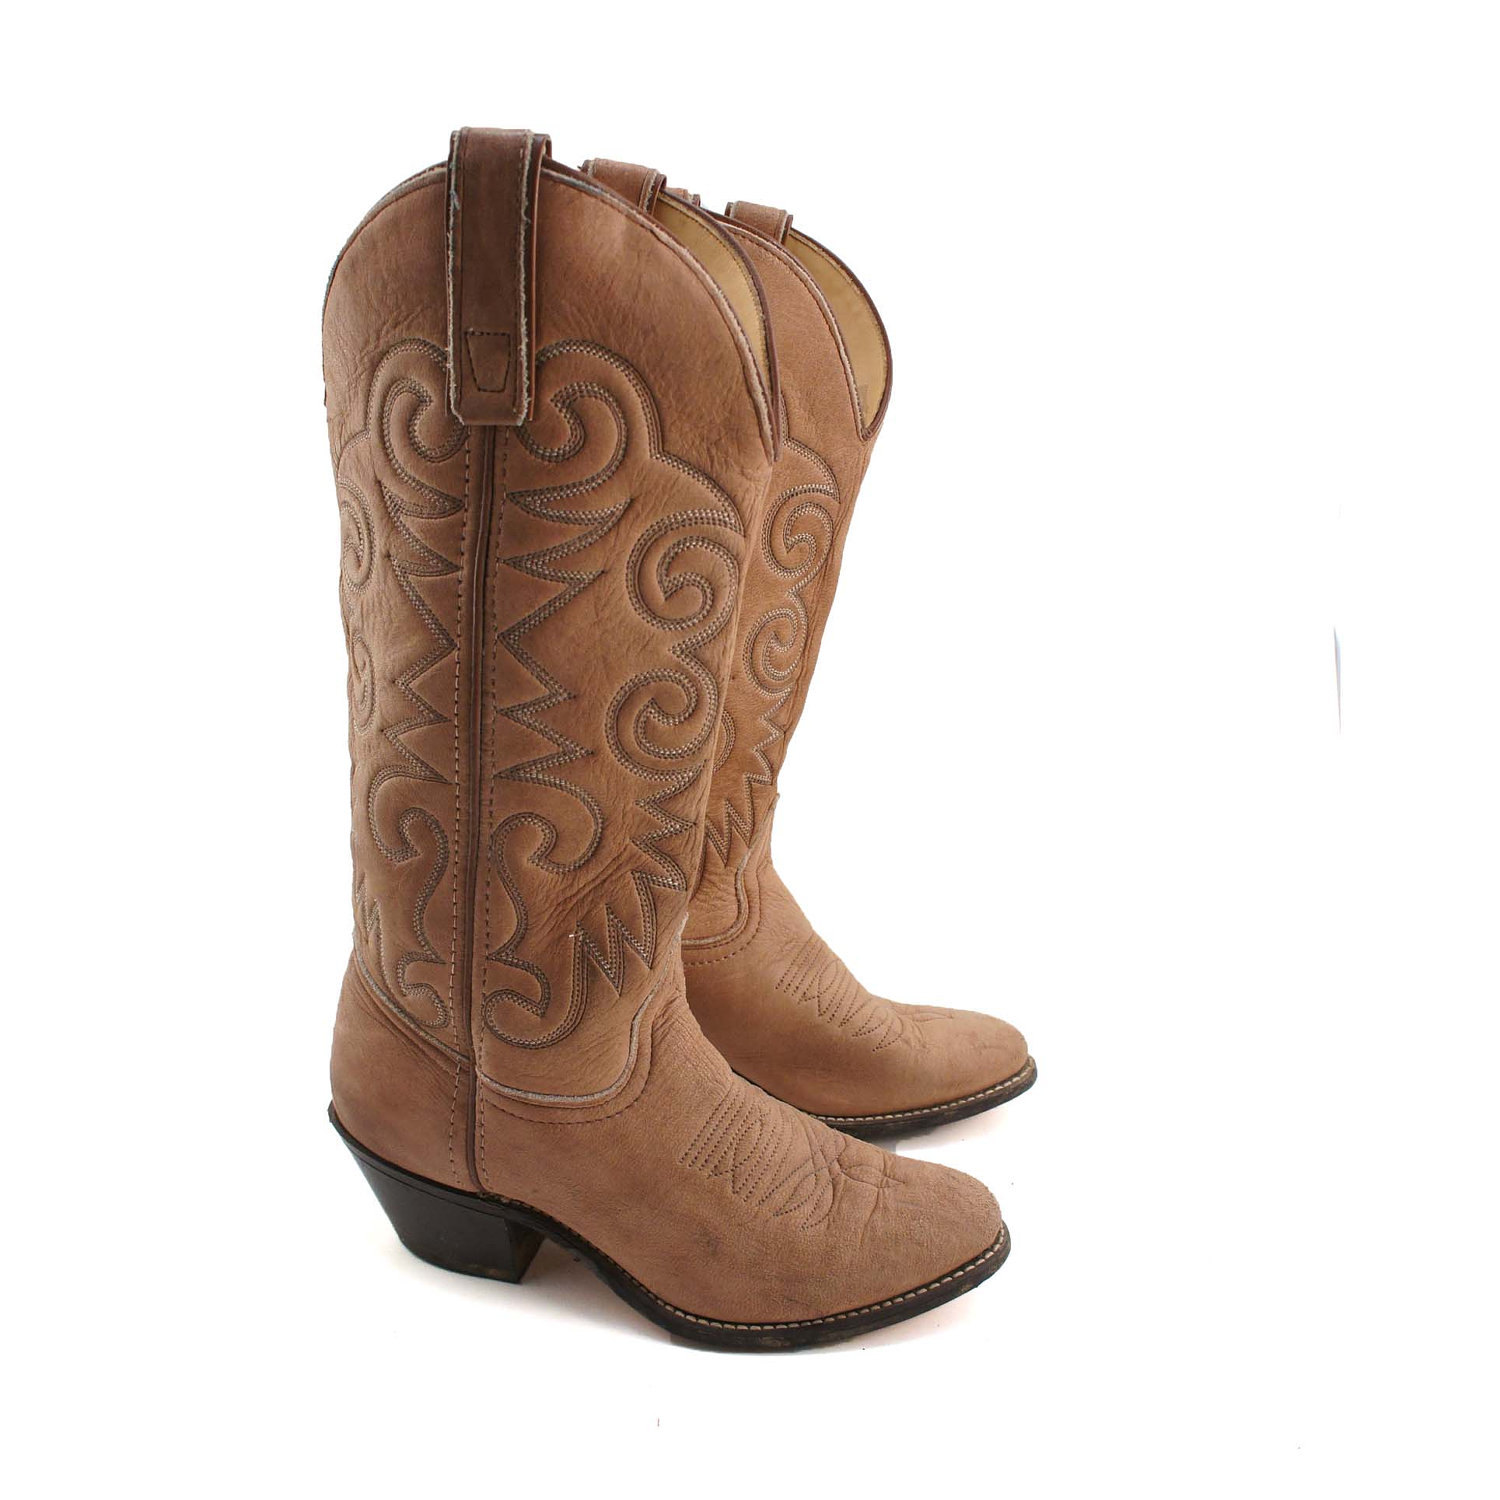 Brown Cowboy Boots For Women Cheap xneyKyxc